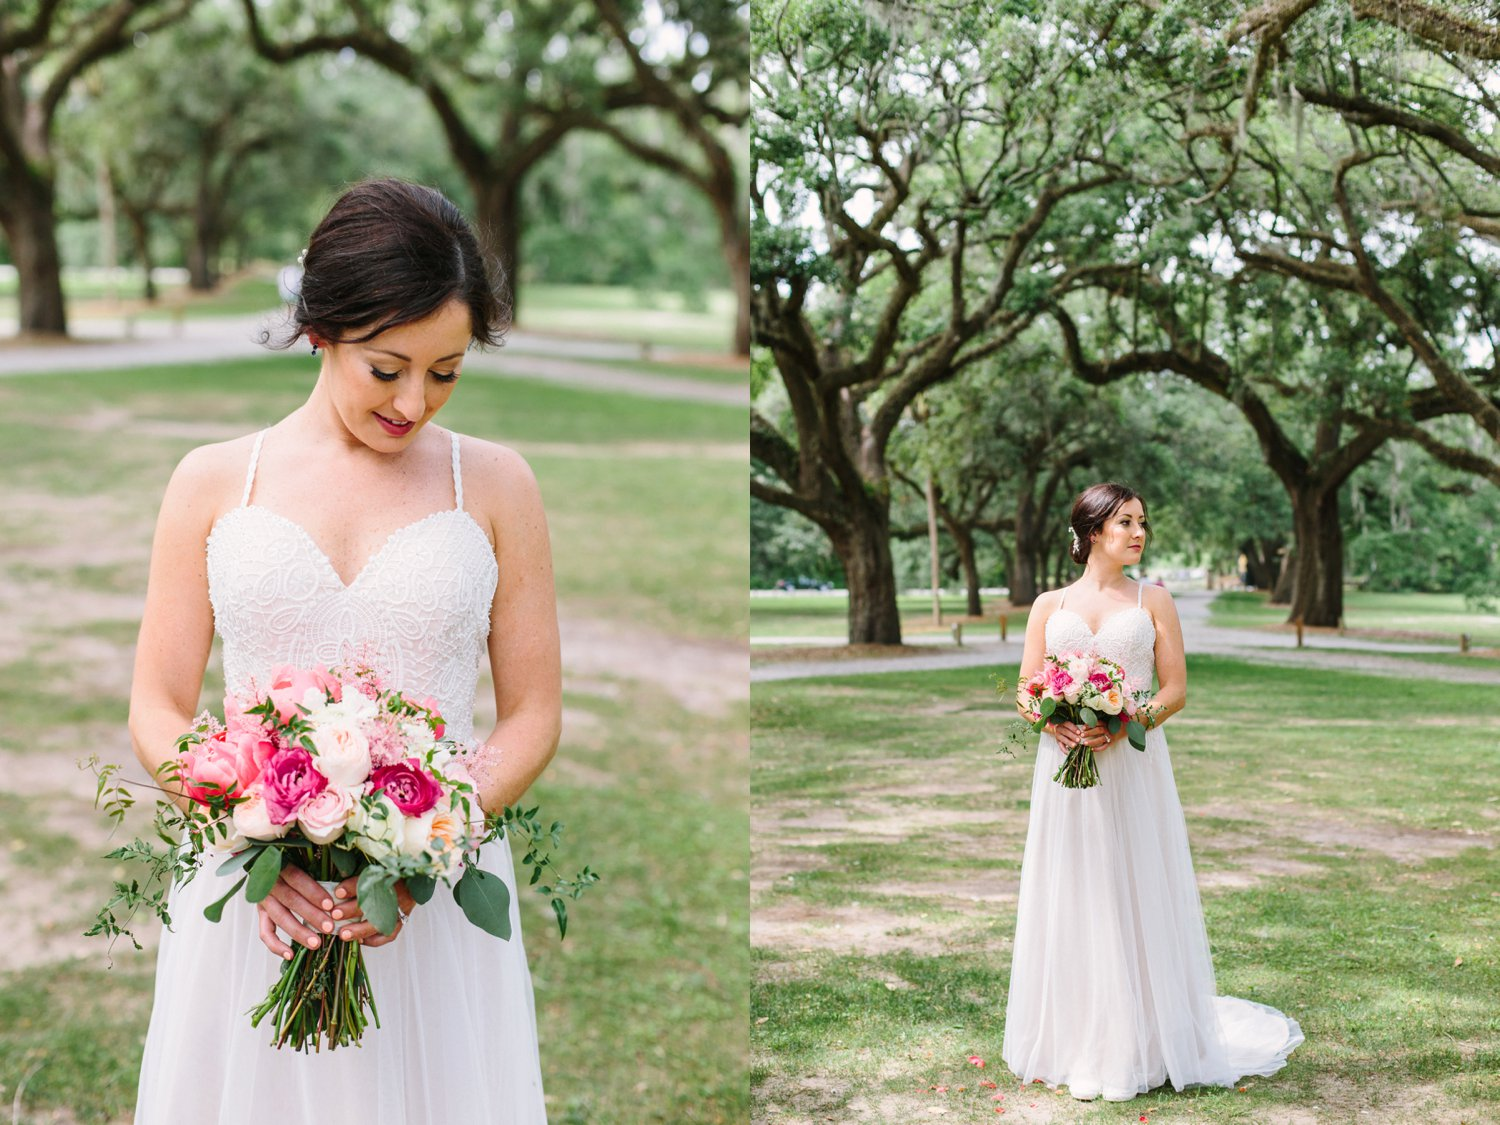 Lindsey_A_Miller_Photography_mcleod_plantation_wedding_charleston_south_carolina_clear_tent_spring_mod_events_048.jpg